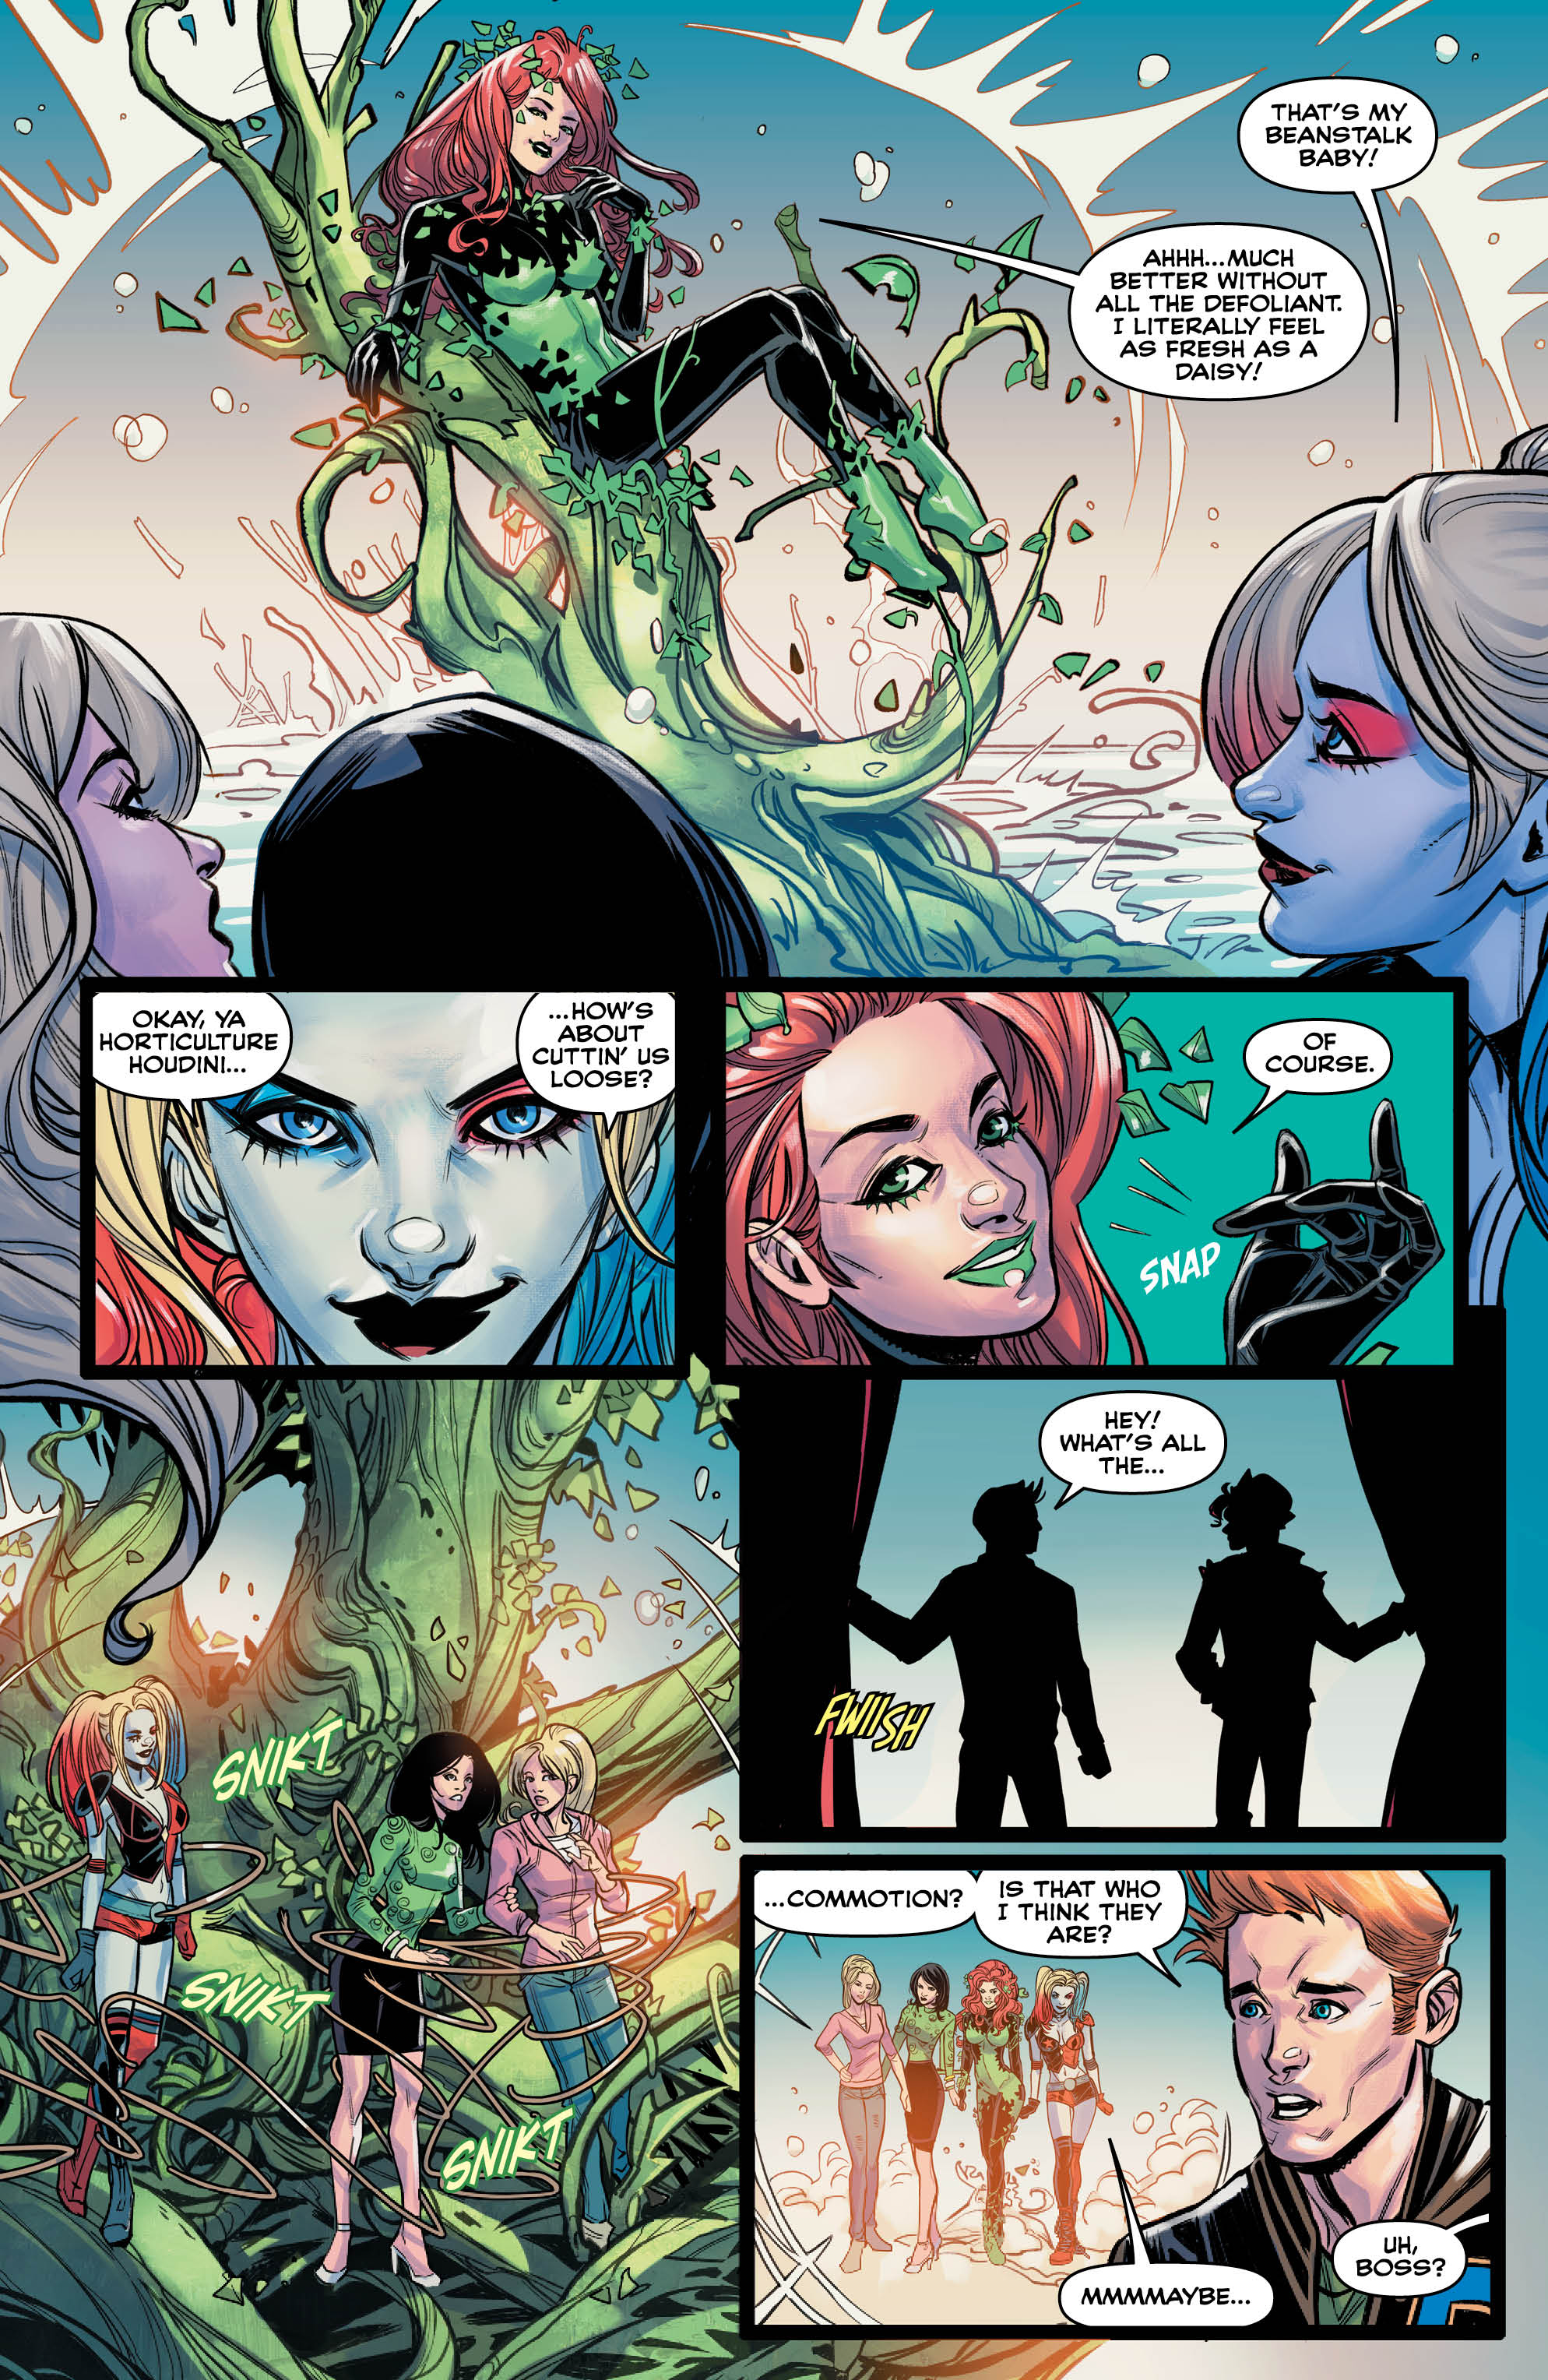 EXCLUSIVE The wanton buffoonery of Harley  Ivy Meet Betty  Veronica comes to an end